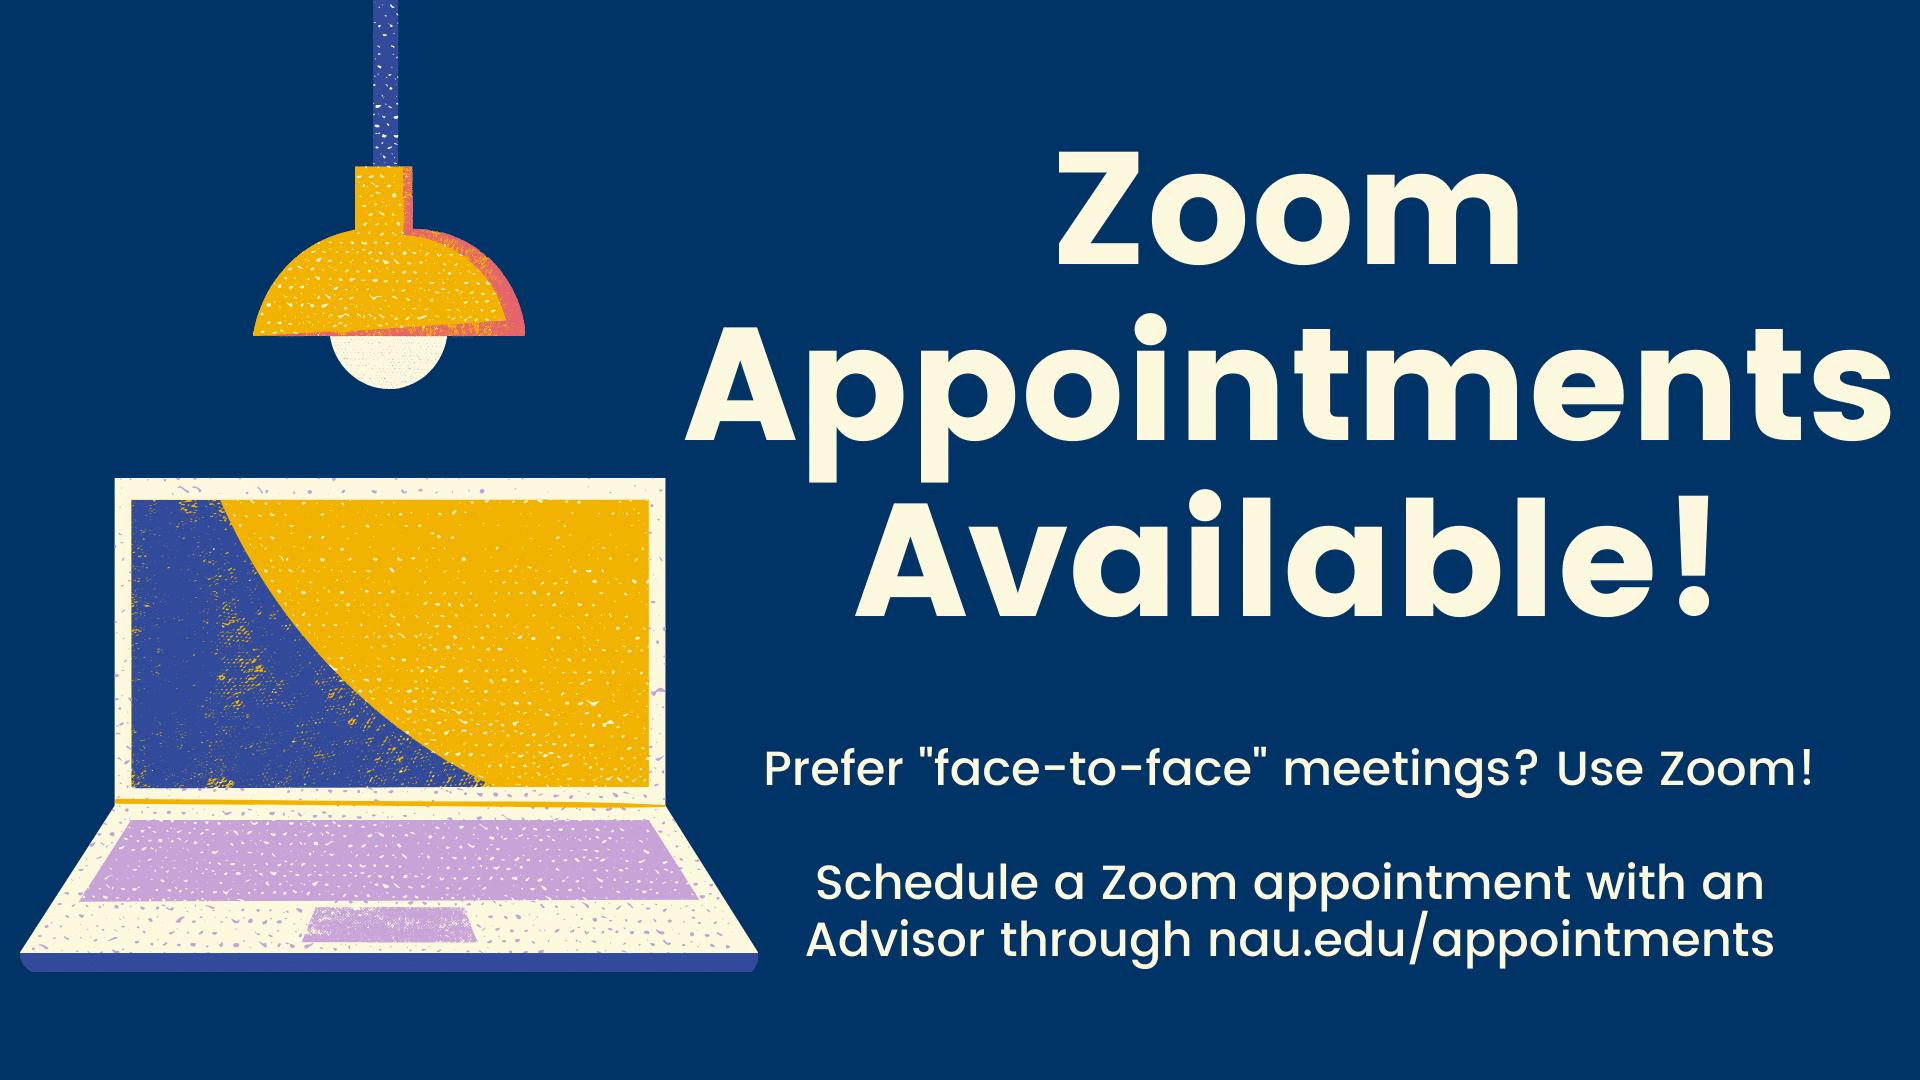 Zoom Appointments